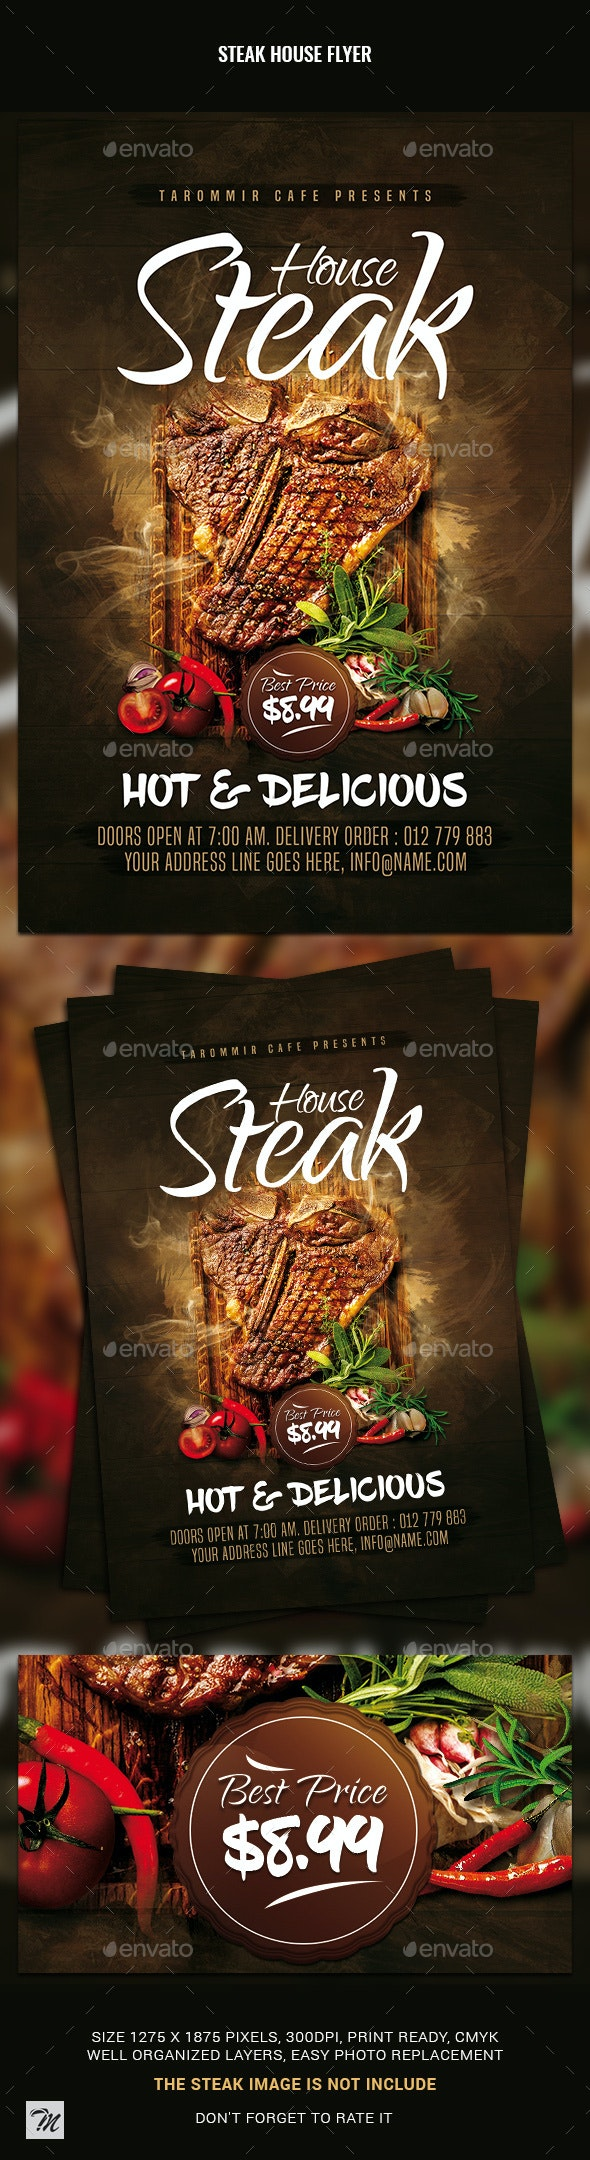 Steak House Flyer - Restaurant Flyers